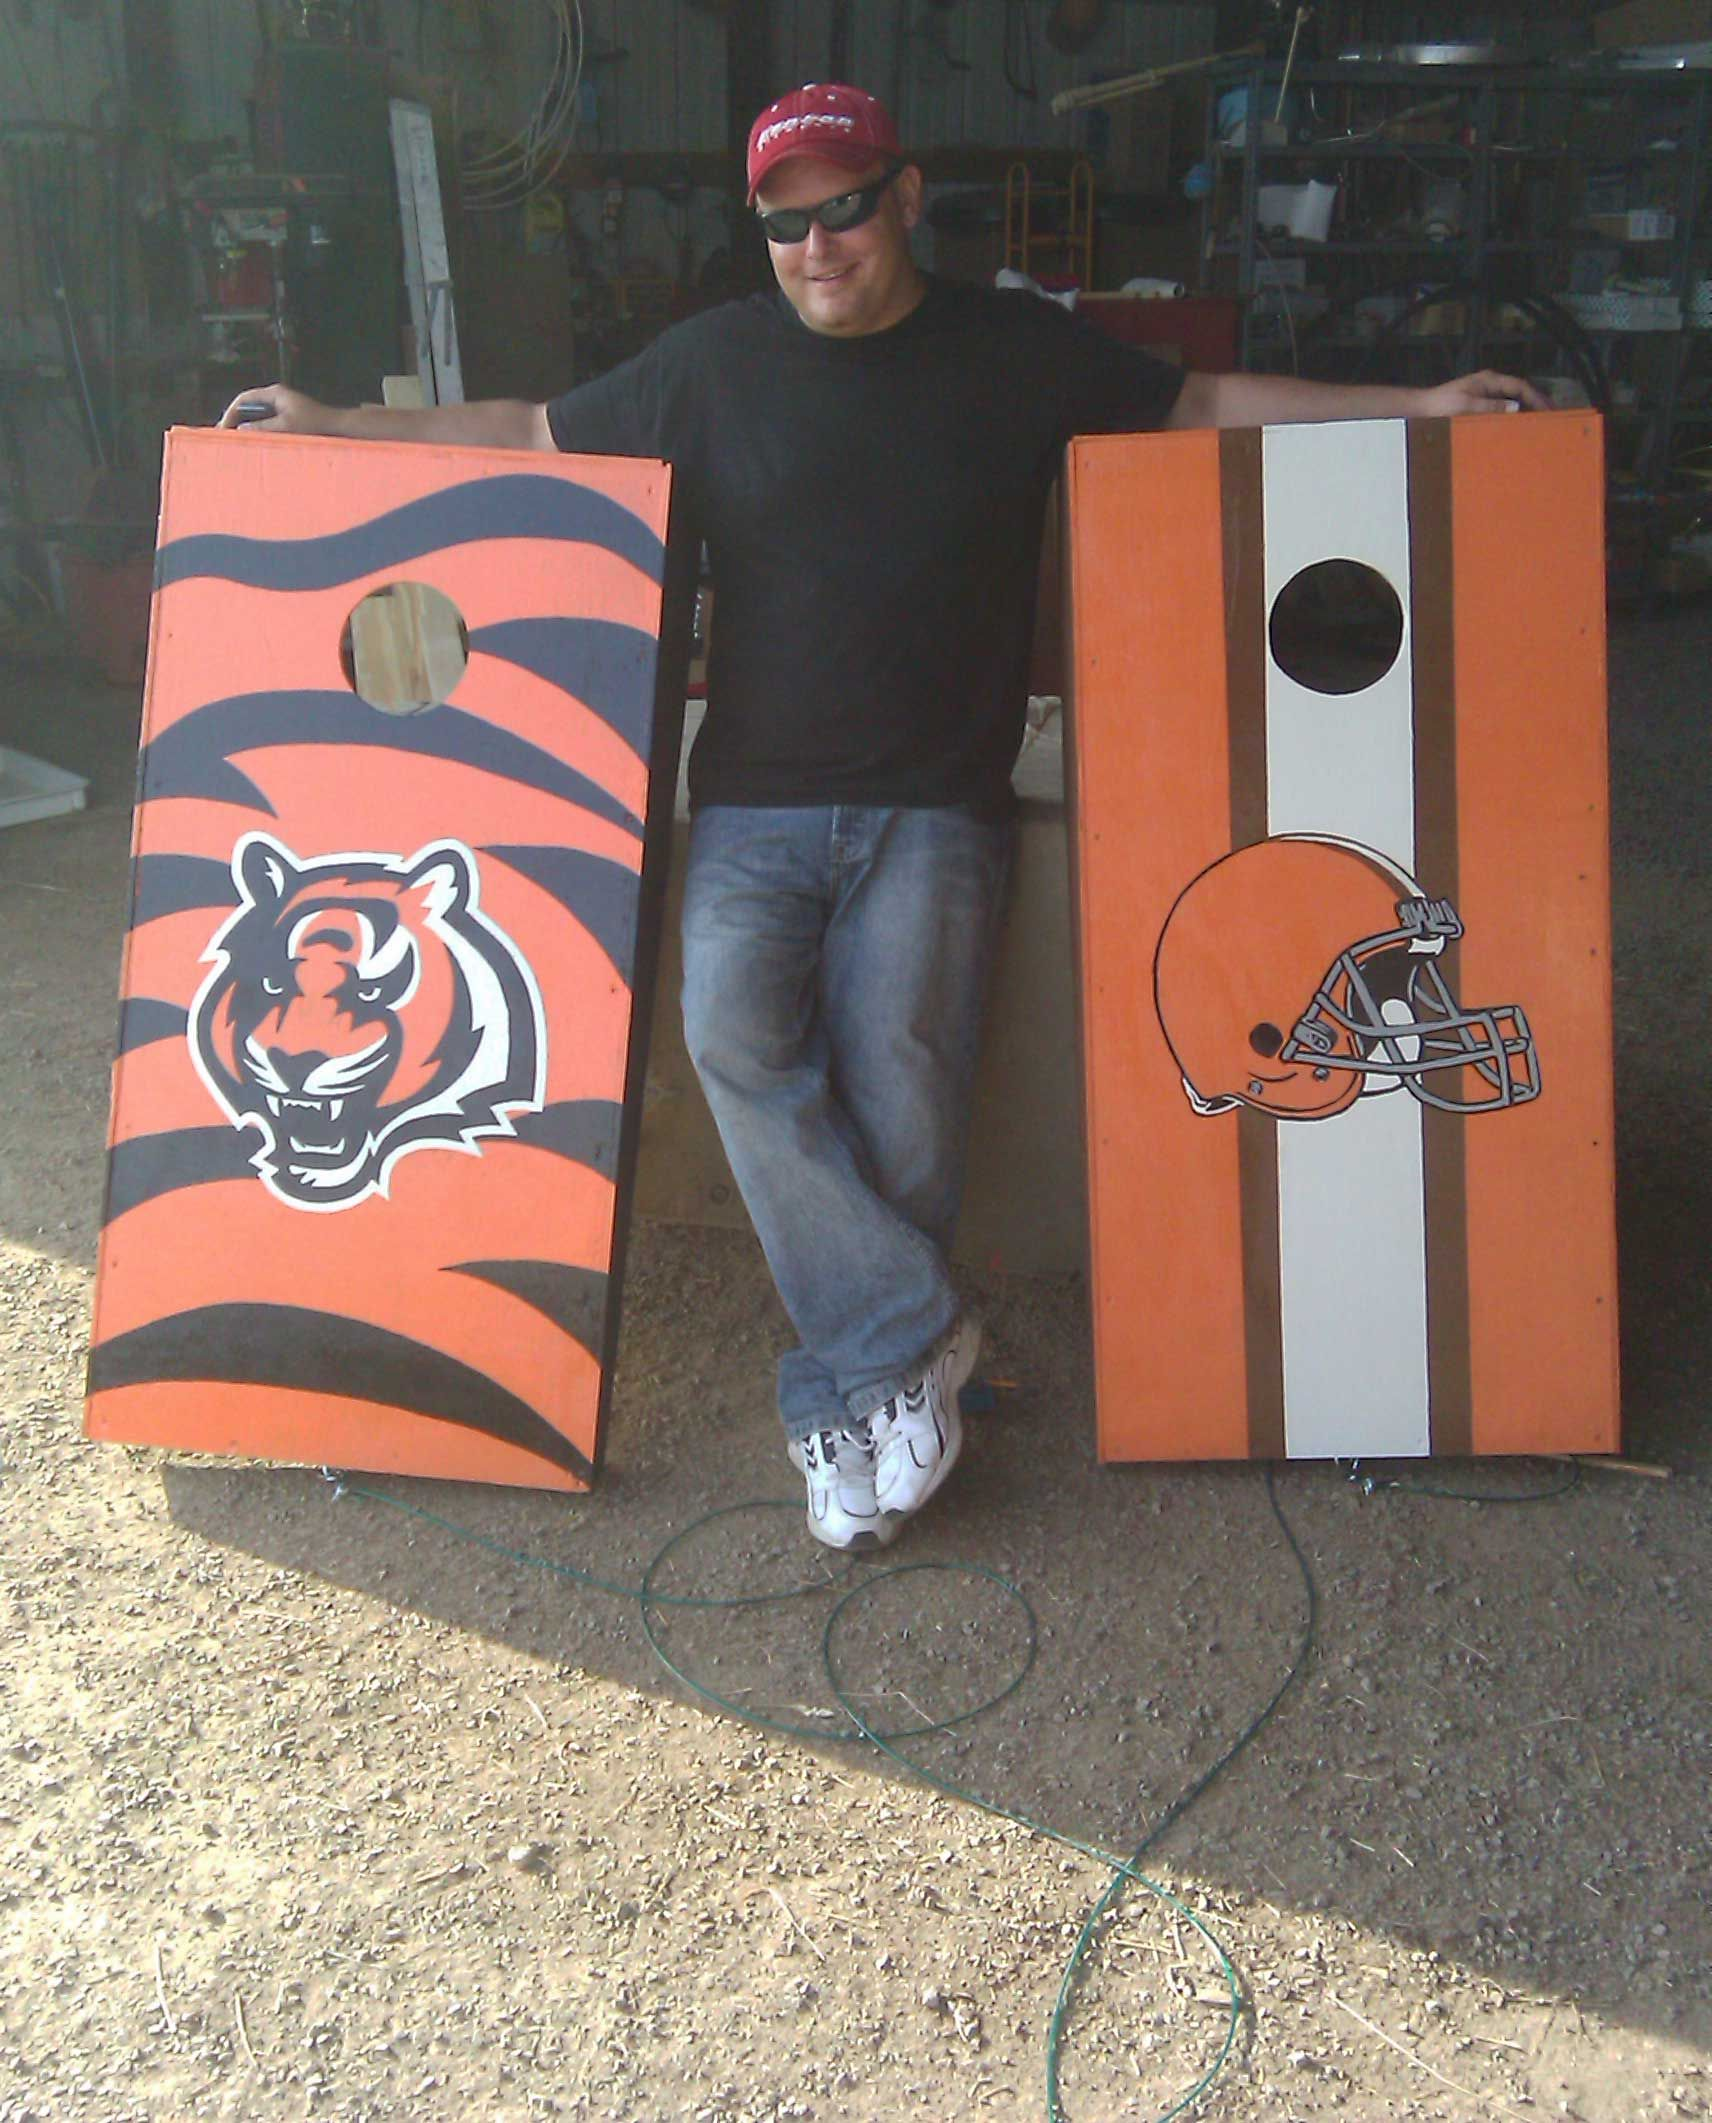 792100fd Bengals Cornhole Boards Cornhole Boards, Outdoor Games, Tailgating, Paper  Shopping Bag, Outdoor